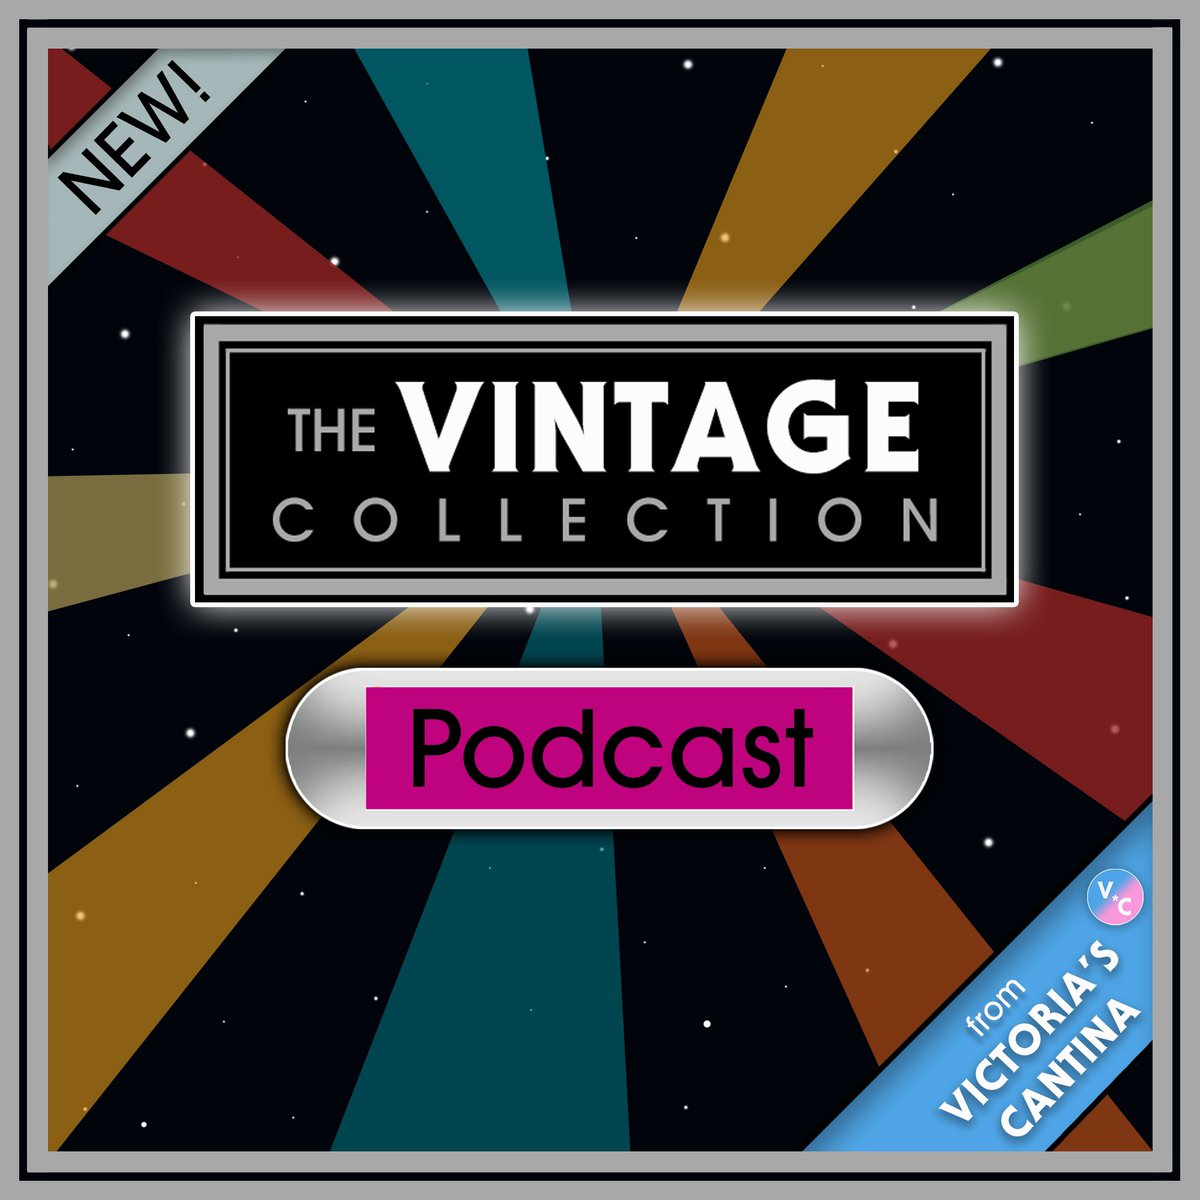 Introducing The Vintage Collection Podcast, celebrating @Hasbro's @starwars TVC line. Featuring cohosts @ChrisSwanski, @JohnAvgou & @bossksbounty. Celebrating, preserving & advocating for TVC. Episode 1 is available NOW wherever you enjoy podcasts & the VC YouTube channel! https://t.co/oS0UyOWDlM